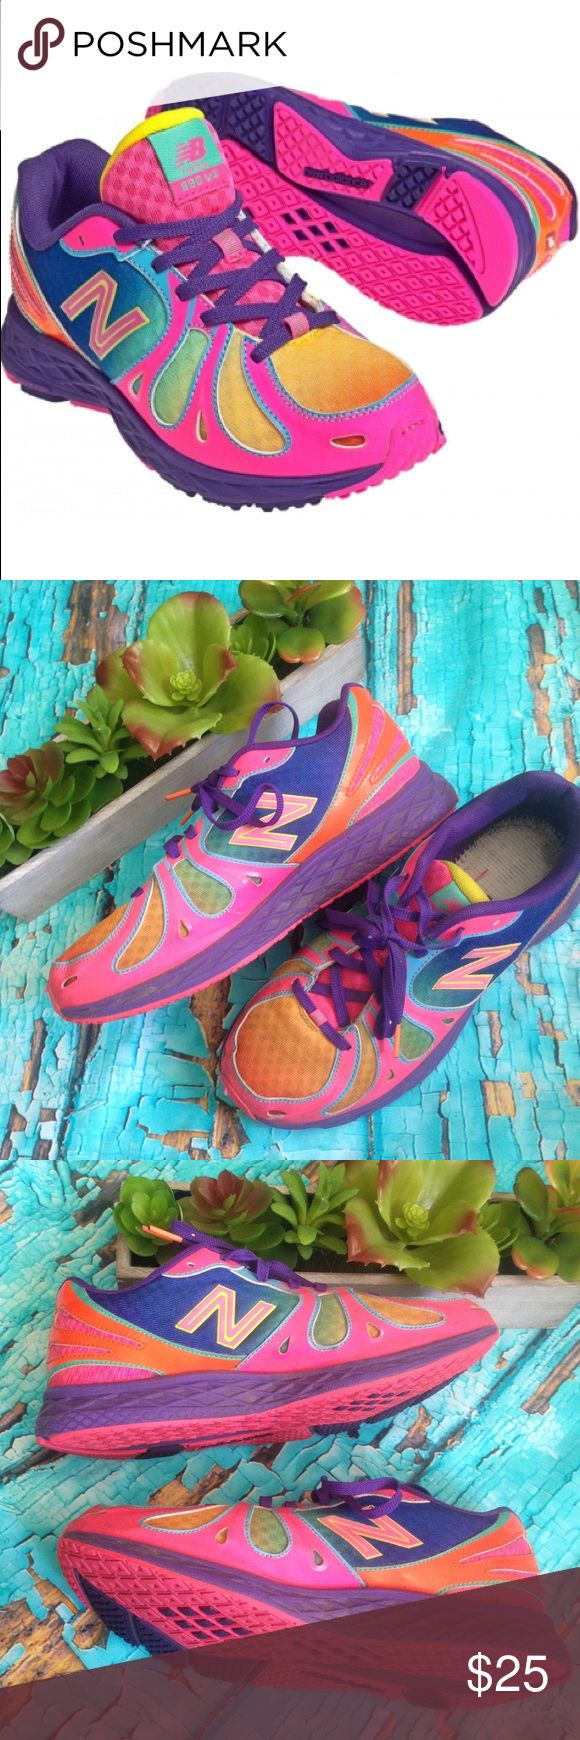 Rainbow New Balance Running Shoes 890 V3 Running shoes in good used condition broken in New Balance Shoes Sneakers